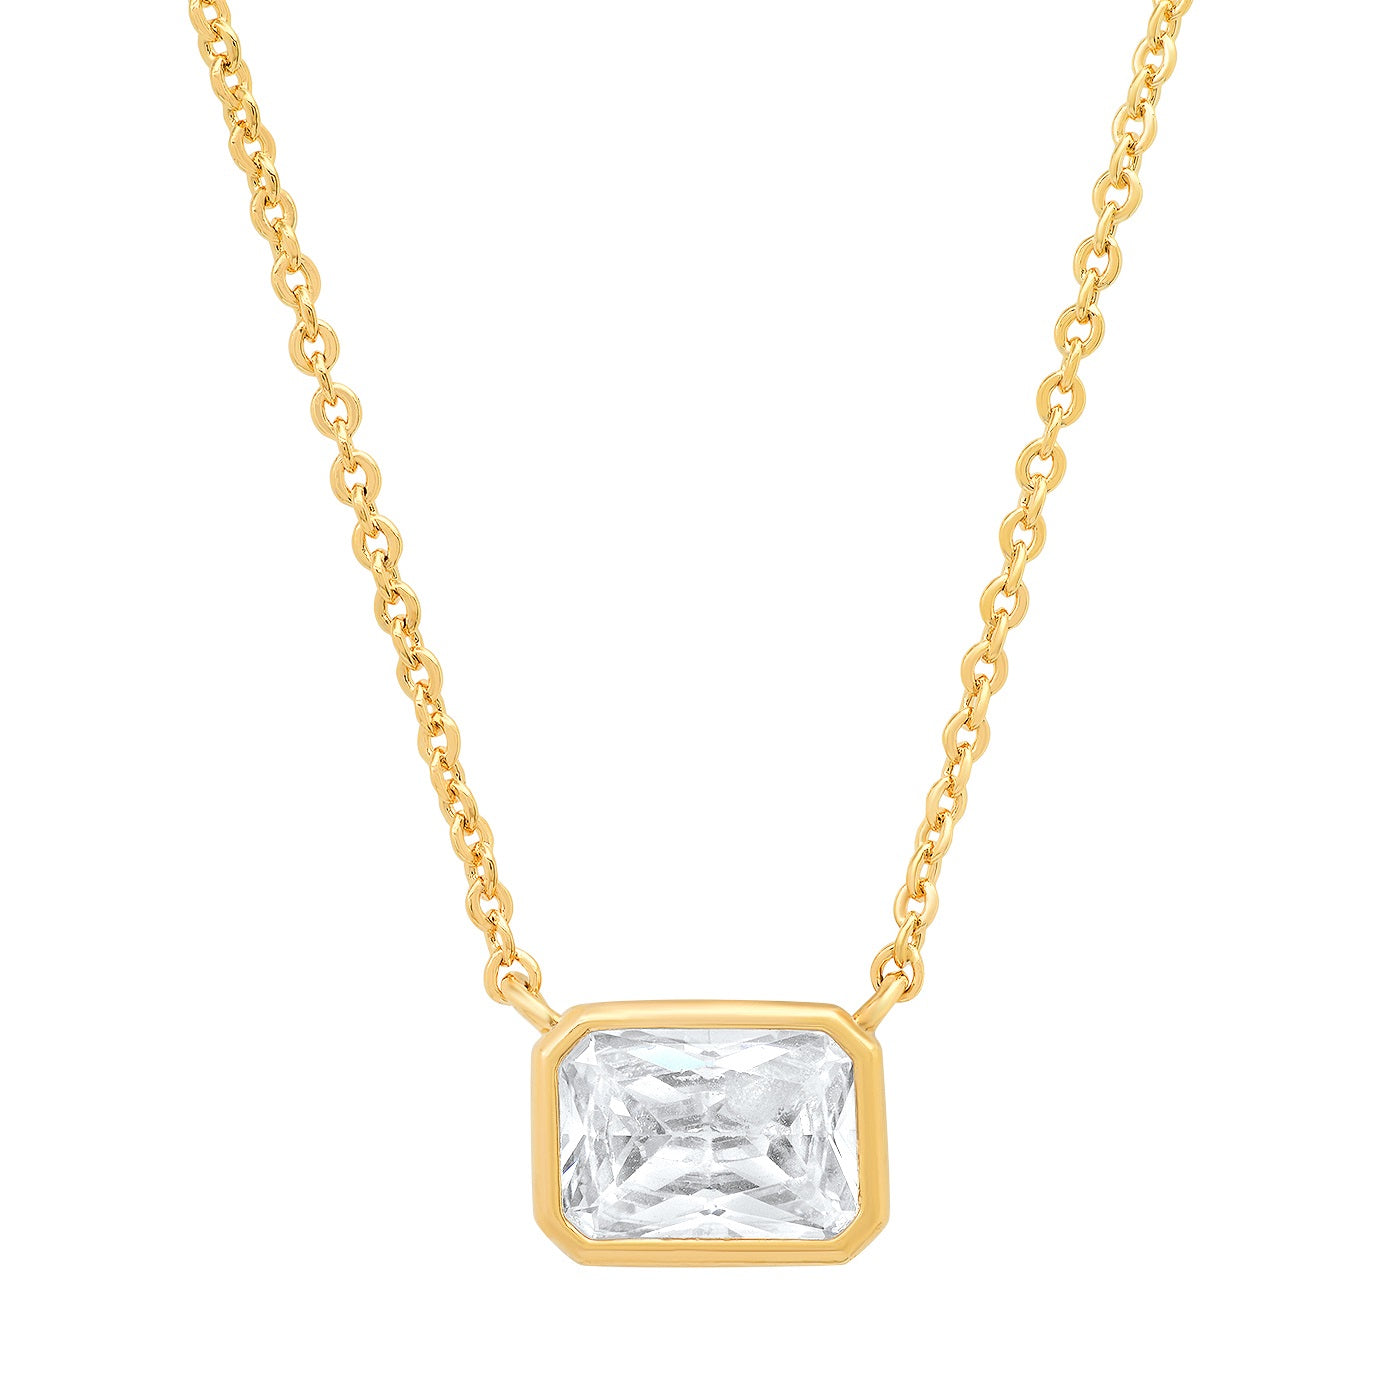 Bezel Set Emerald Cut CZ Pendant Necklace